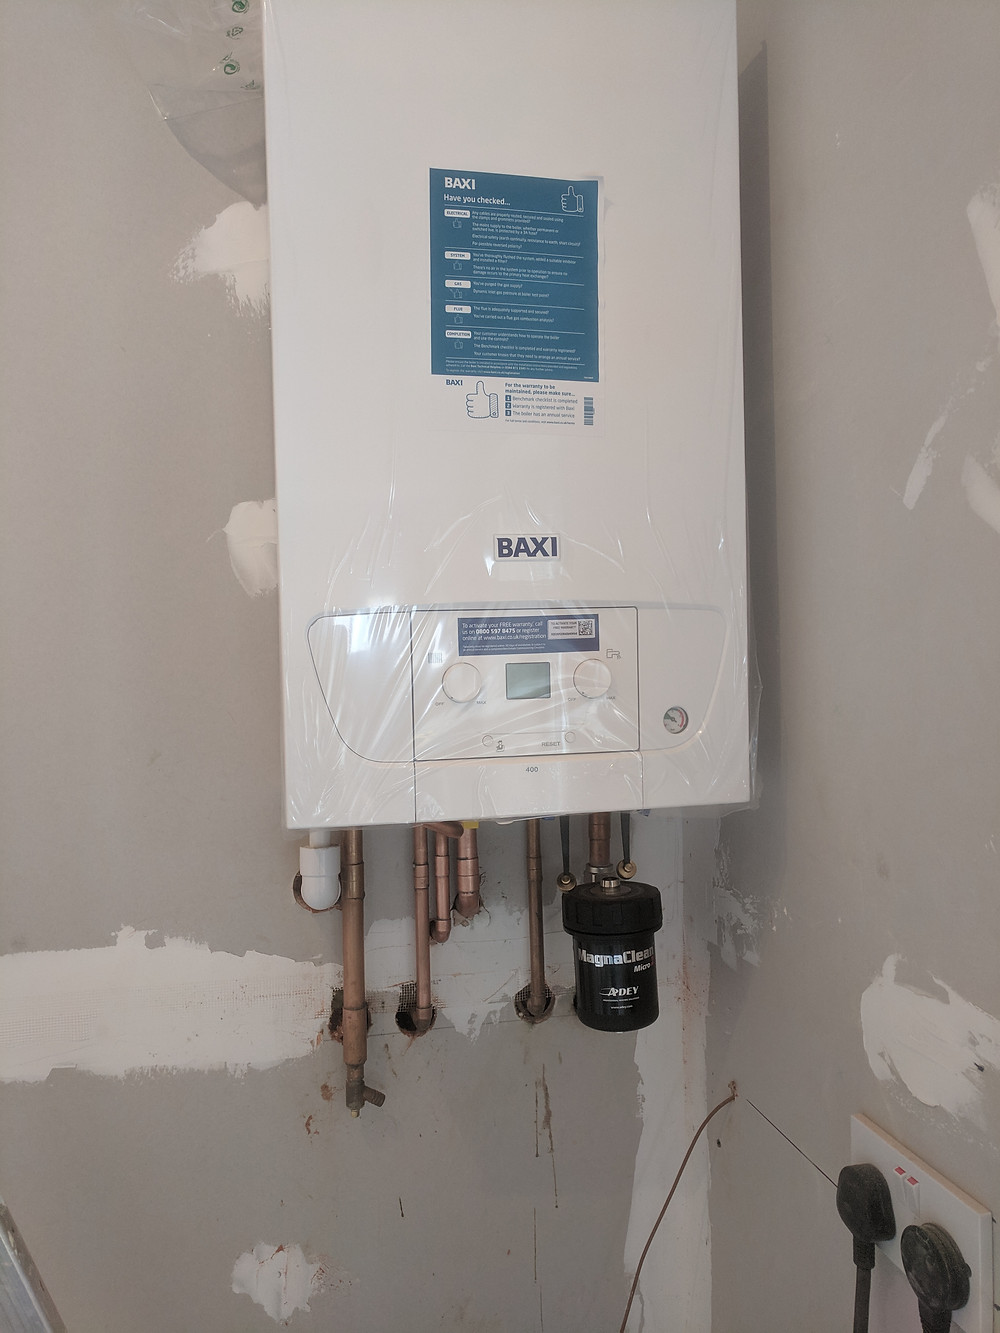 New Baxi 424 combi boiler recently installed. Including a magnetic filter.